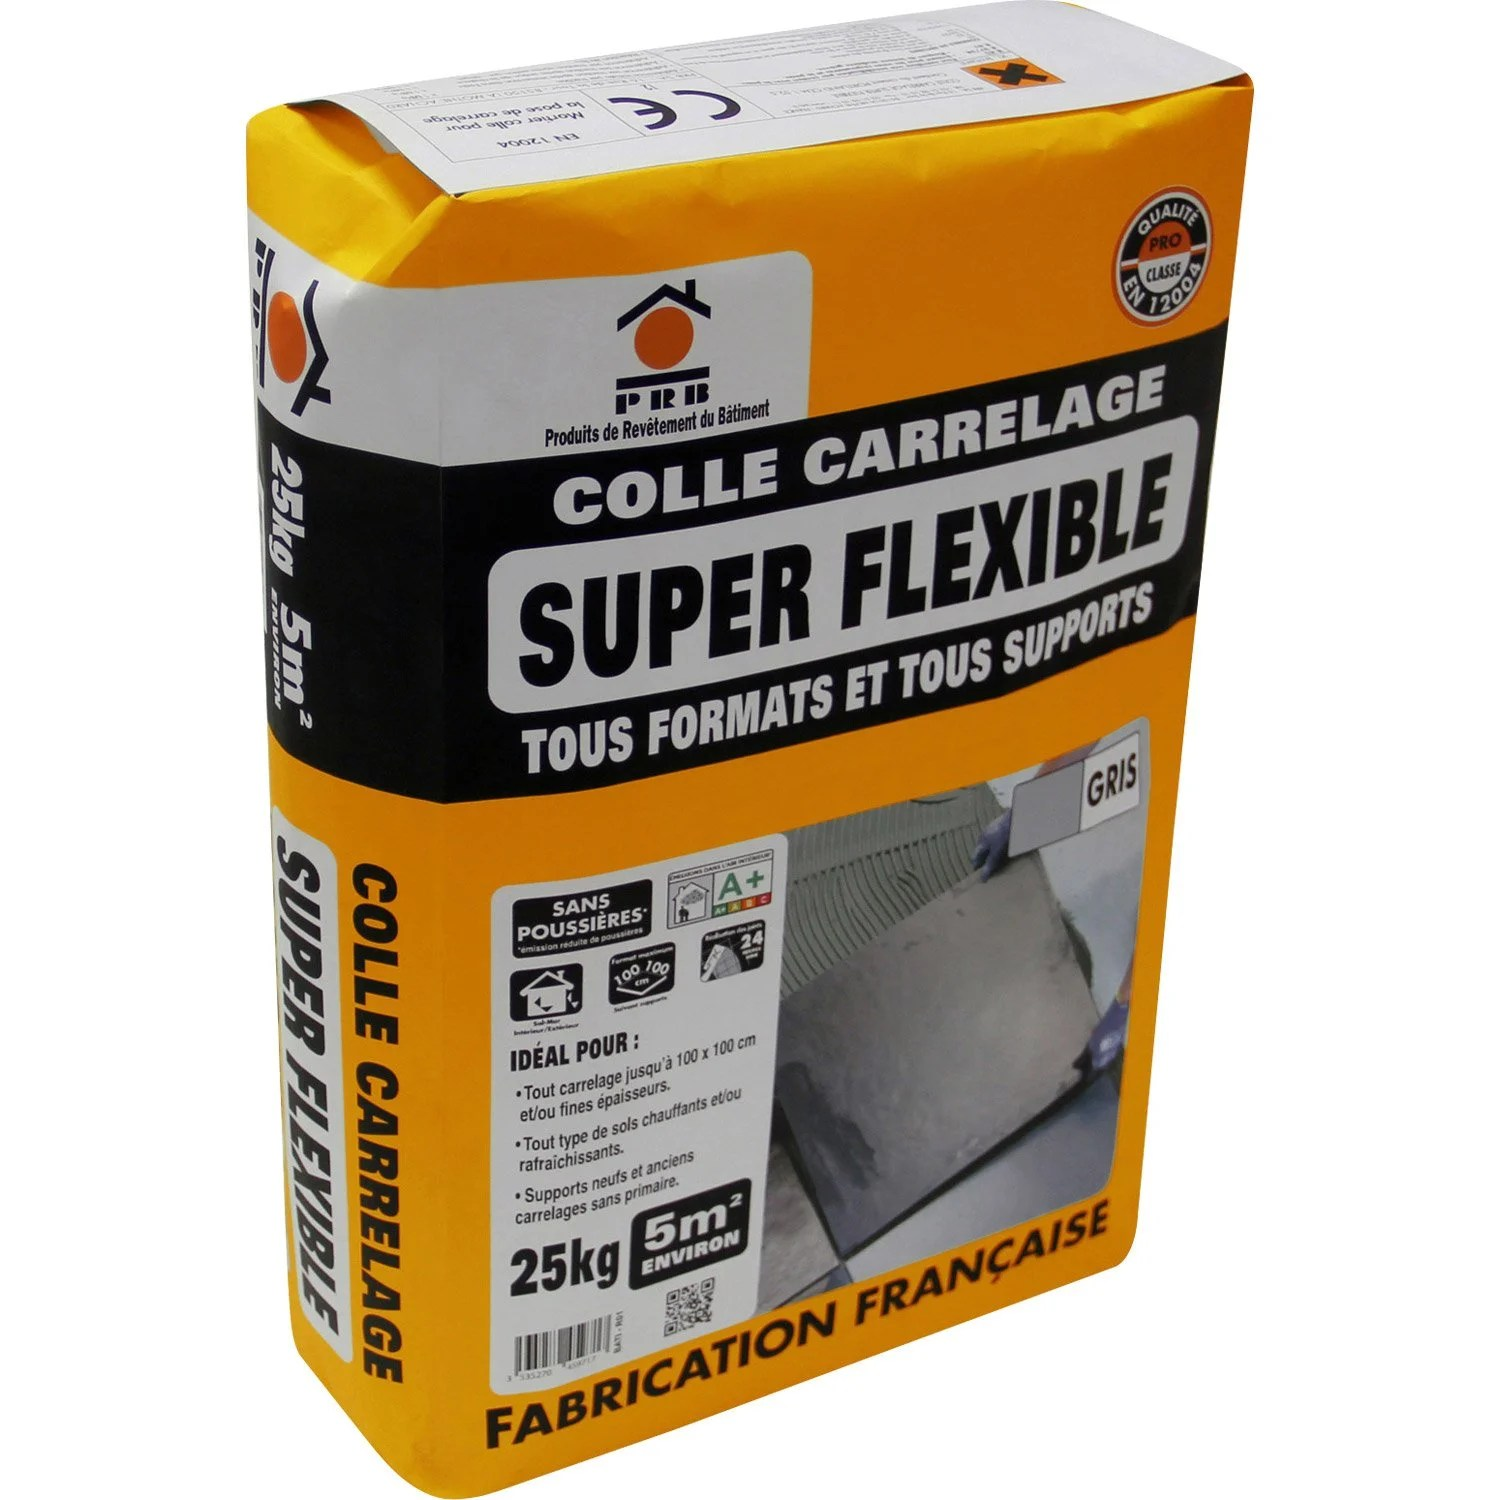 Leroy Merlin Colle Carrelage Exterieur Mortier Colle Superflex Gris Prb 25kg Leroy Merlin